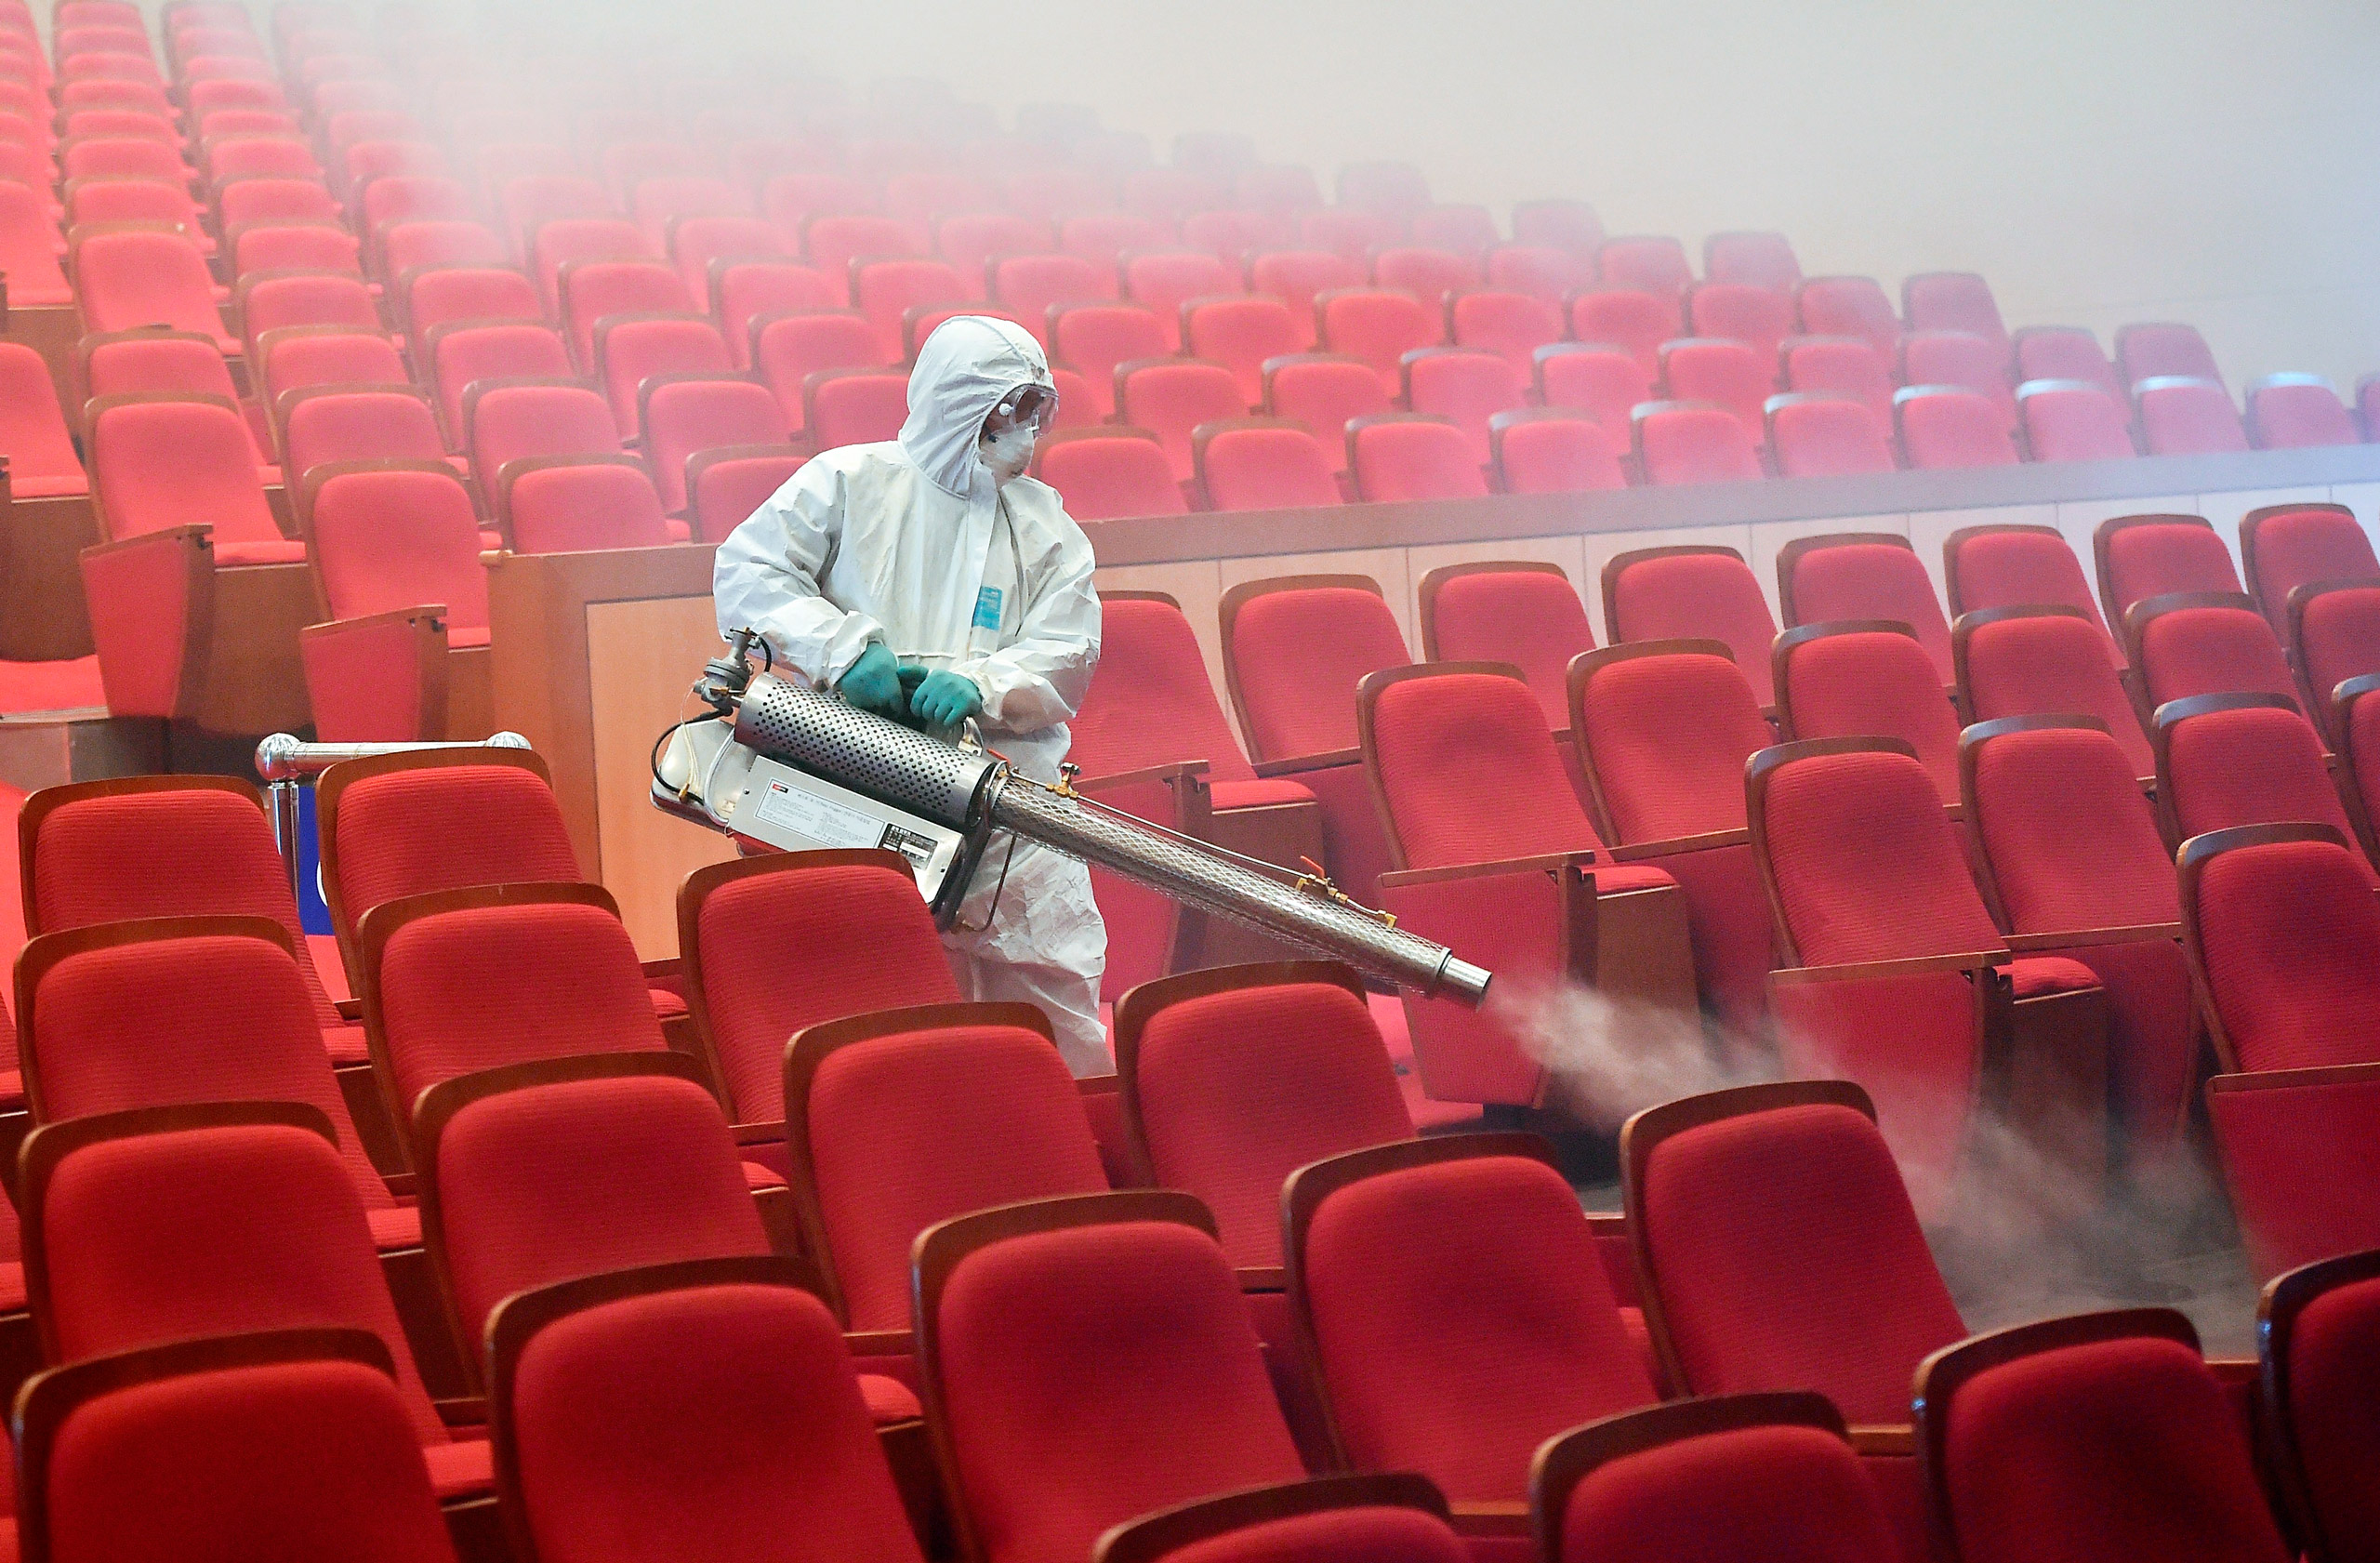 A South Korean health worker fumigates a movie theater in June 2015 after MERS cases were reported